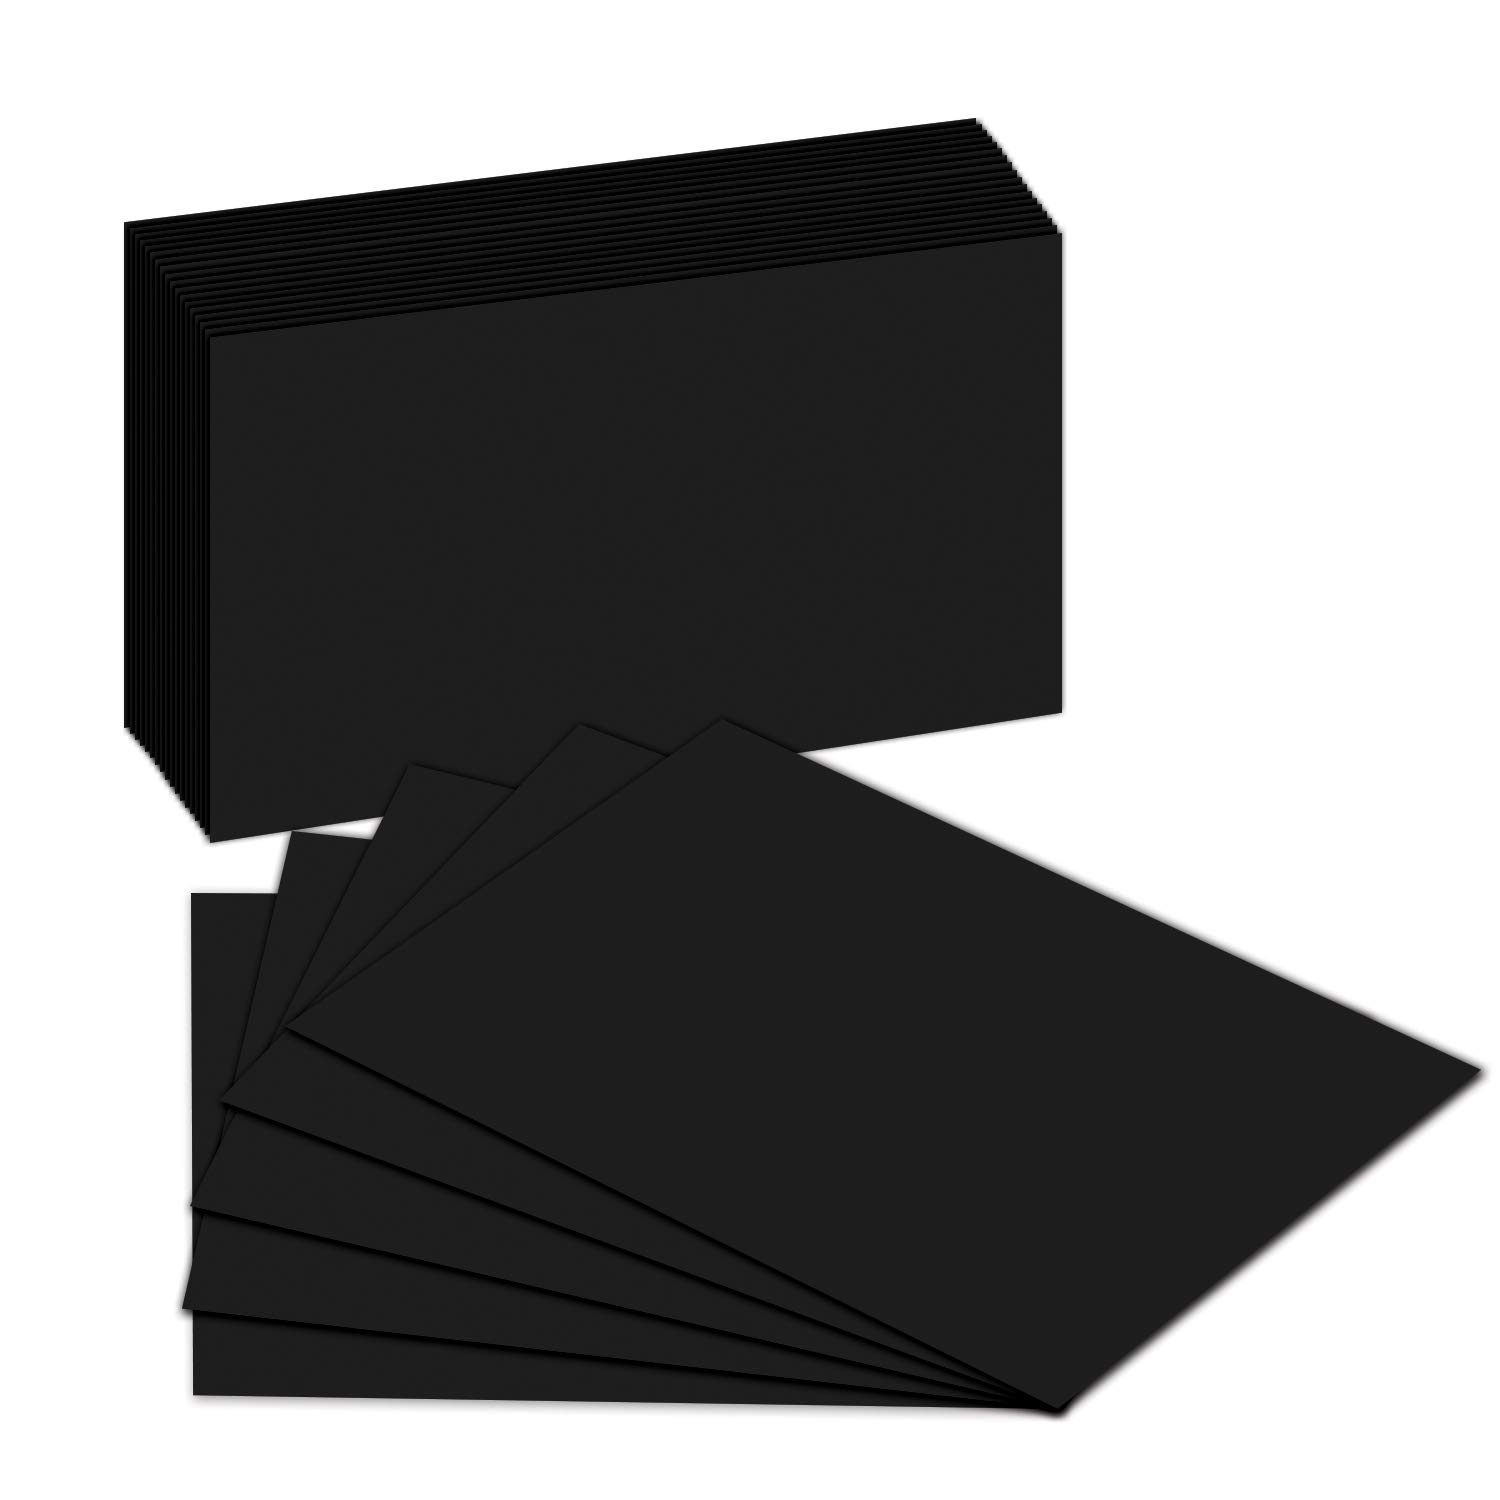 Blank Index Flash Note Cards | Black Colored Cardstock For DYI Greeting & Invitation etc. | 50 Cards Per Pack | 6 x 9